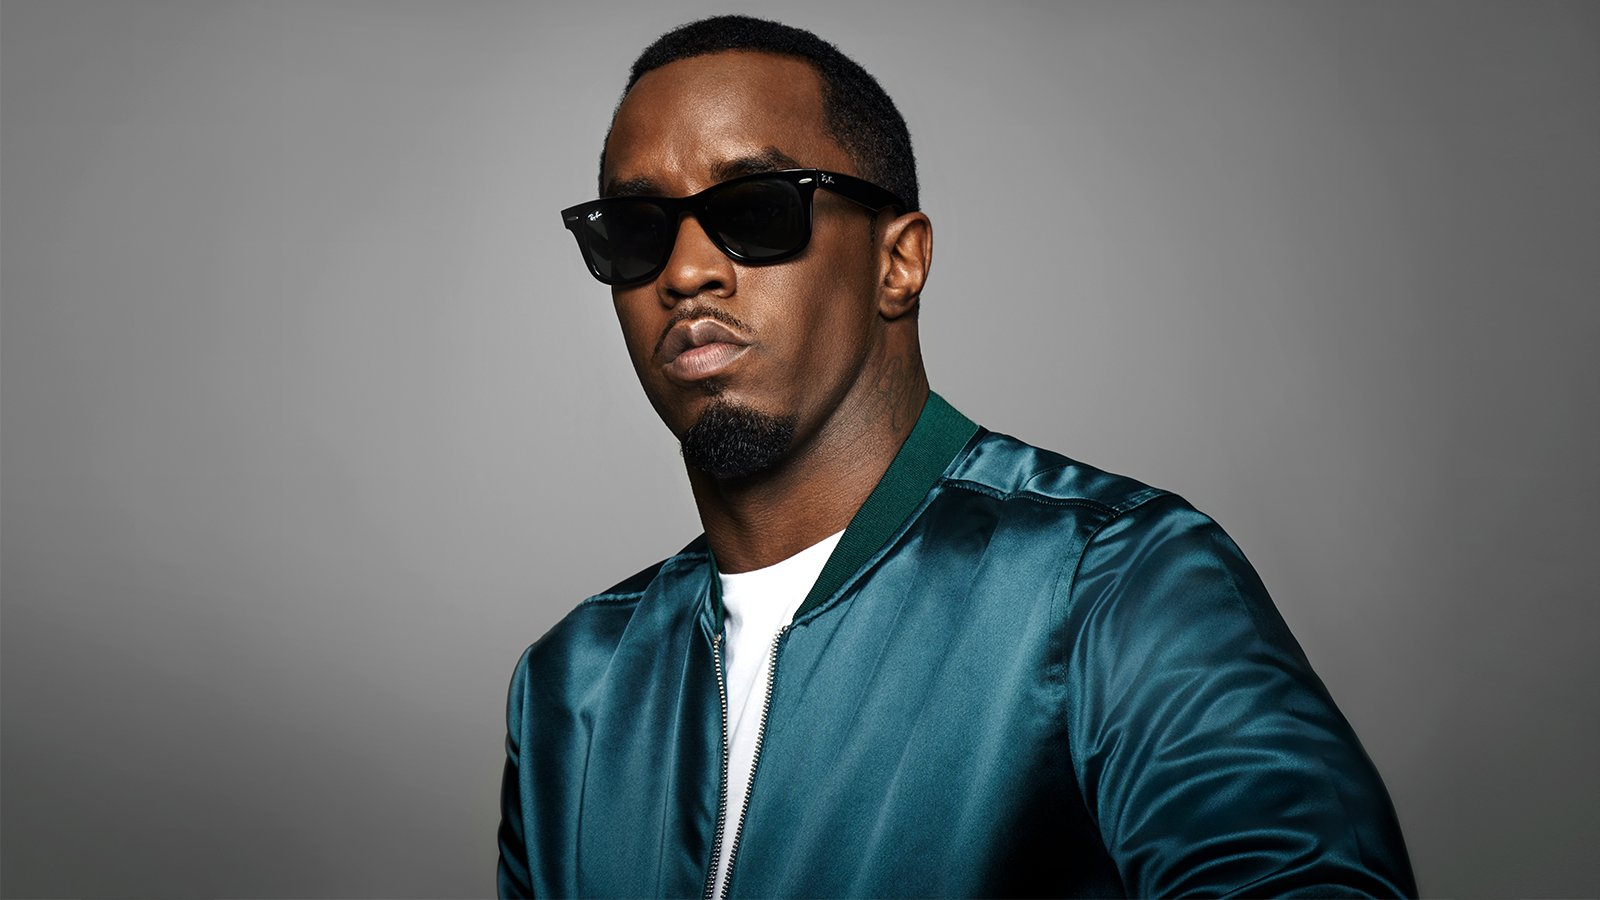 Diddy's Ex-GF Accuses Him Of Abuse: She Says She's Been Forced To Have Two Abortions - Watch The Video